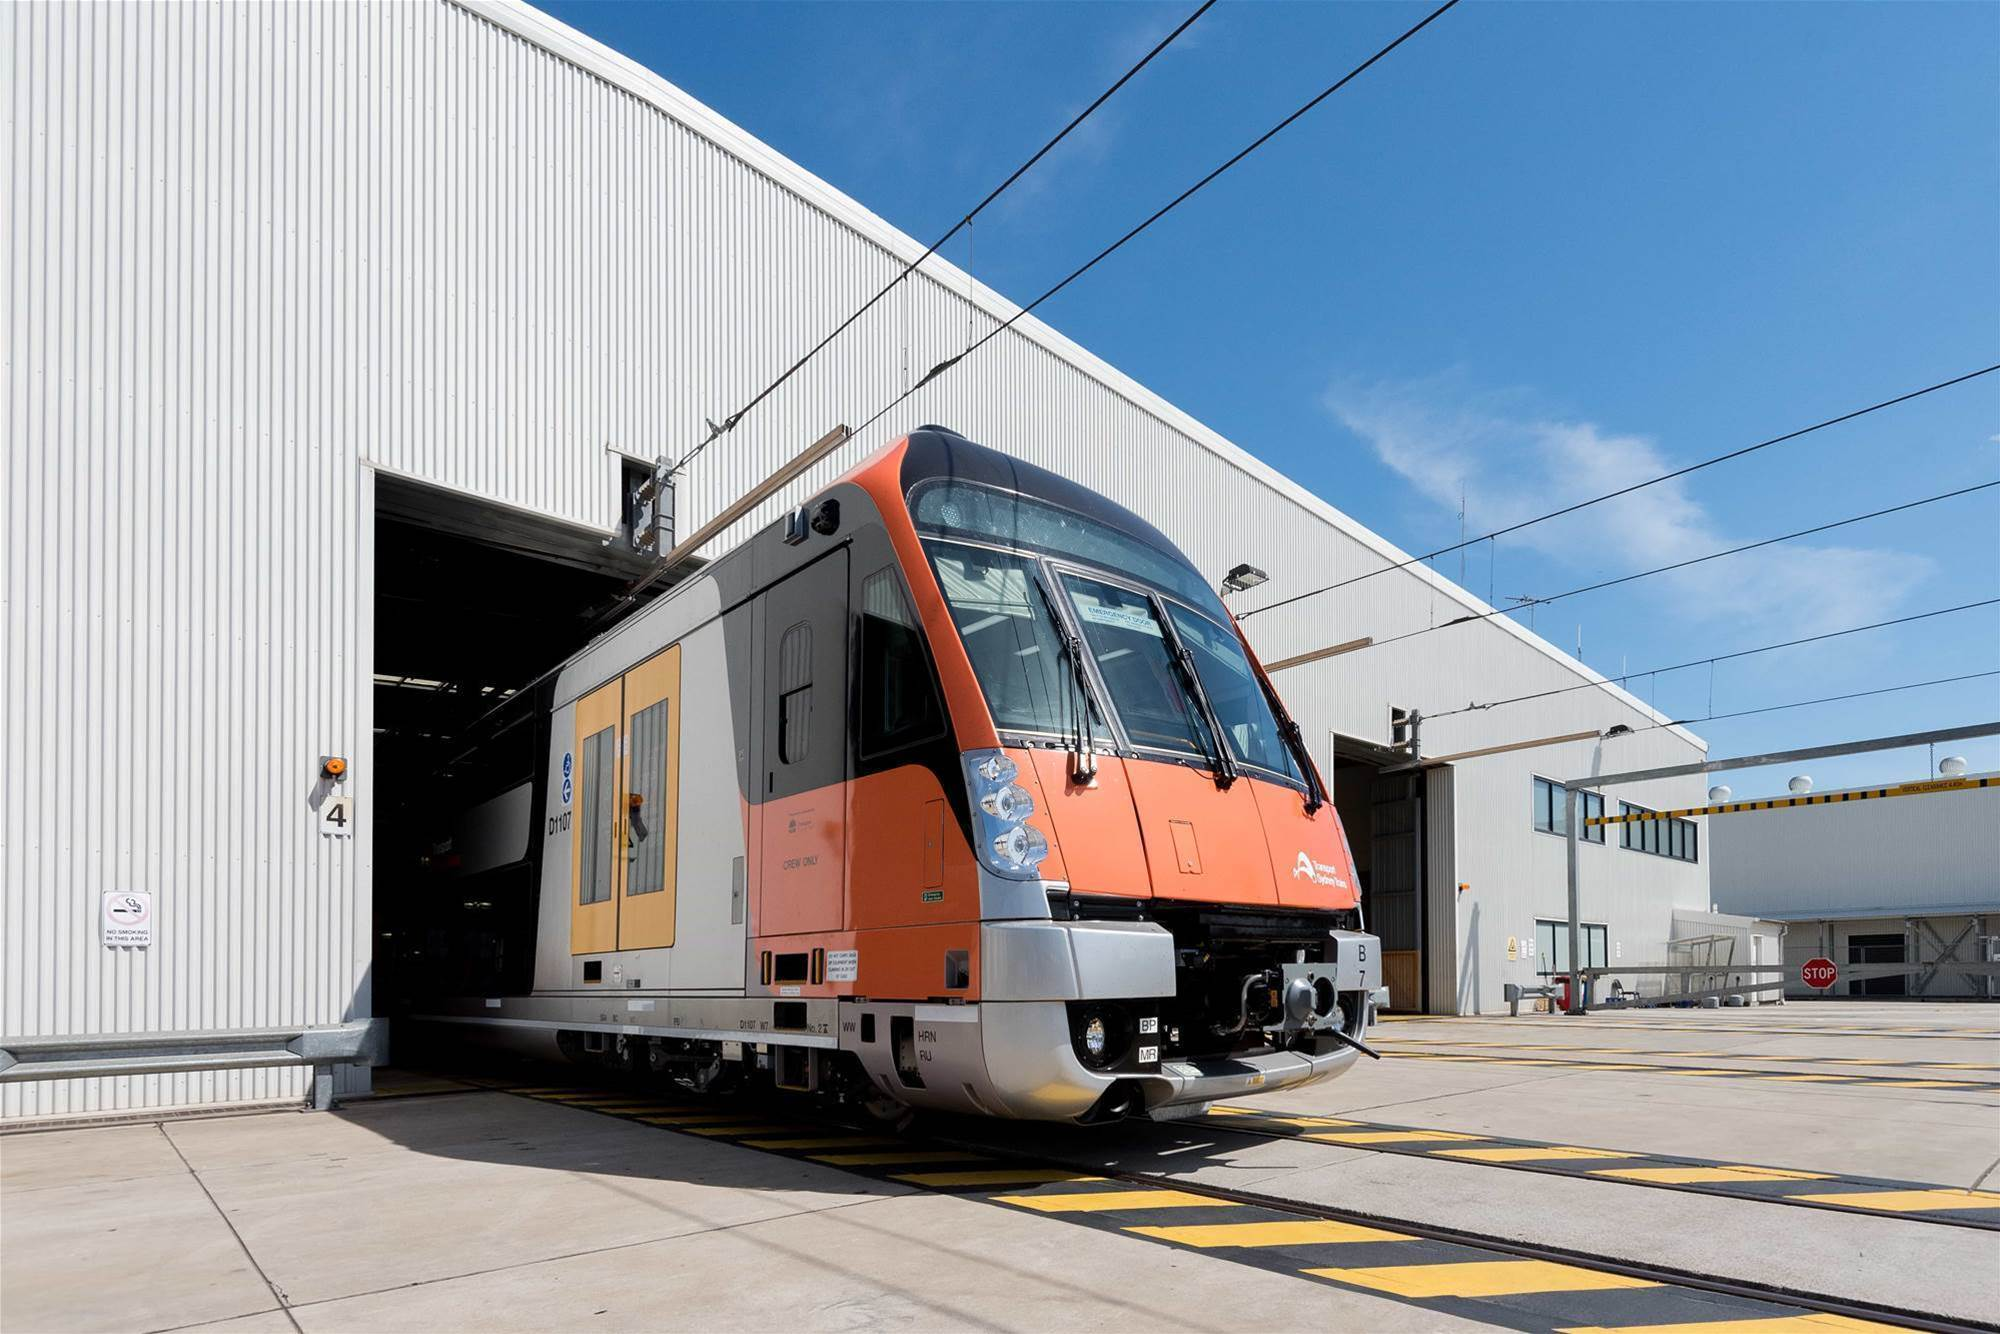 Engineers tap massive stream of IoT data from Sydney trains